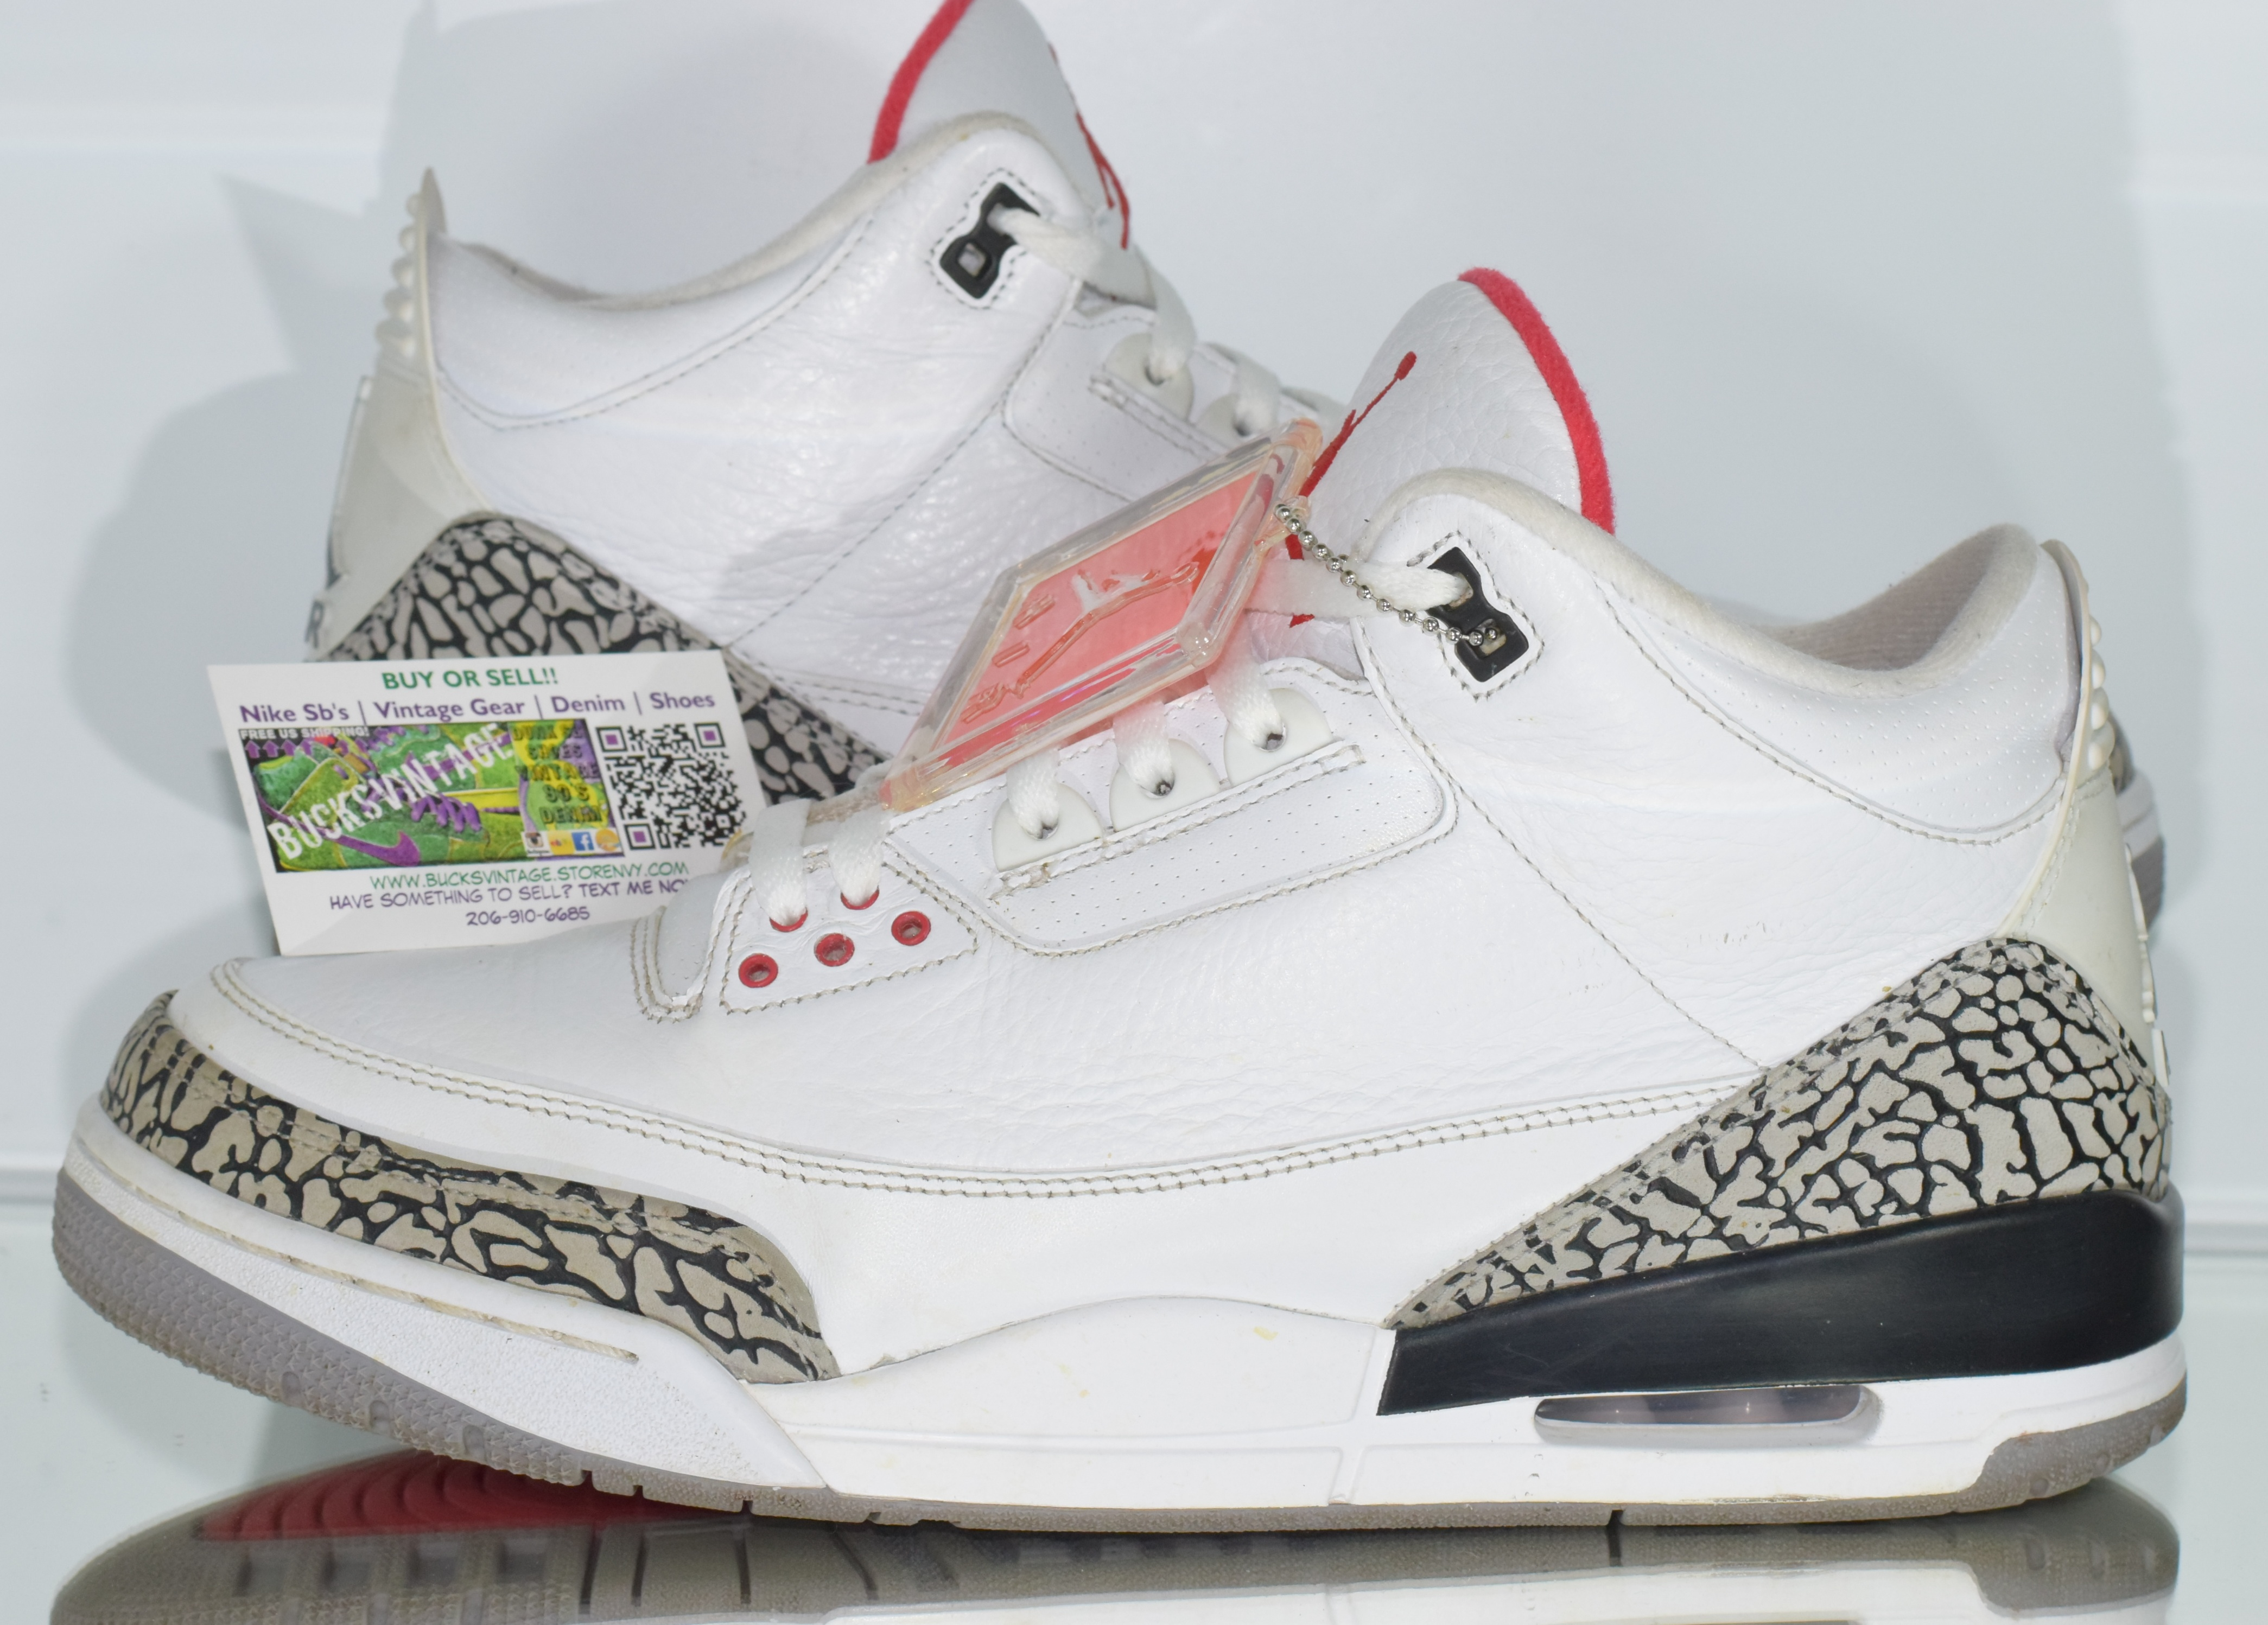 finest selection 61411 78361 Size 12   2011 Nike Air Jordan 3 White Cement Elephant Print